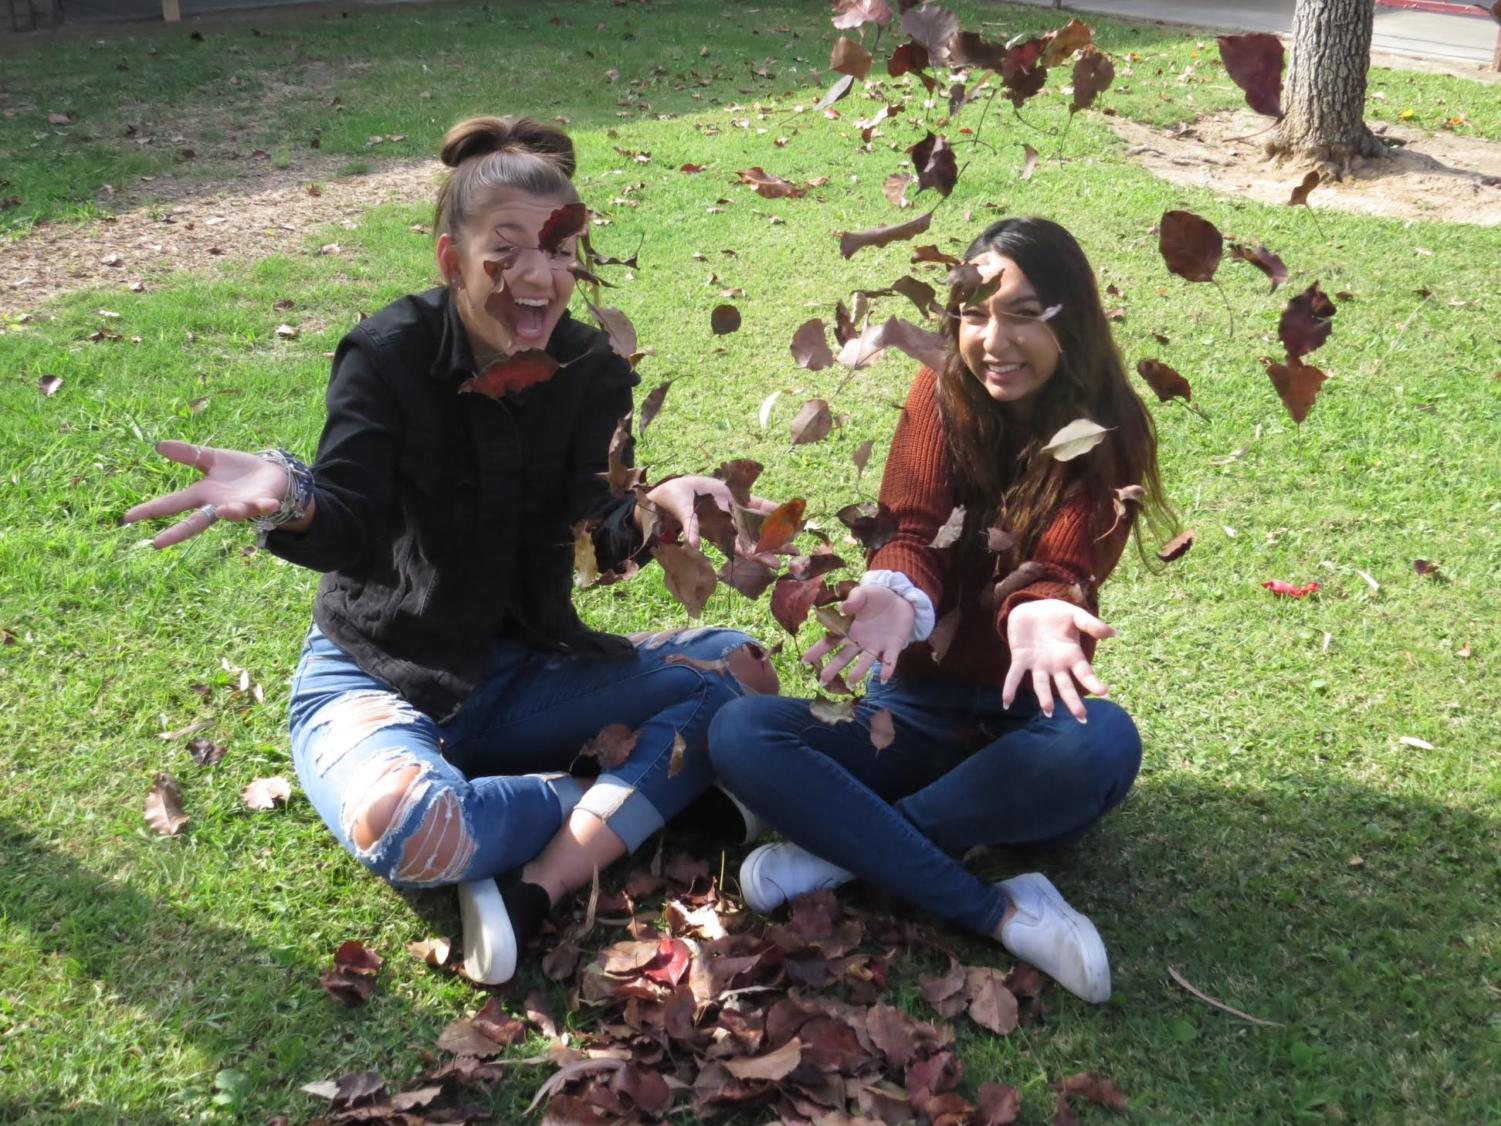 Chloe Masciale and Laila Najem playing around with the fall leaves as they get ready for Thanksgiving break.